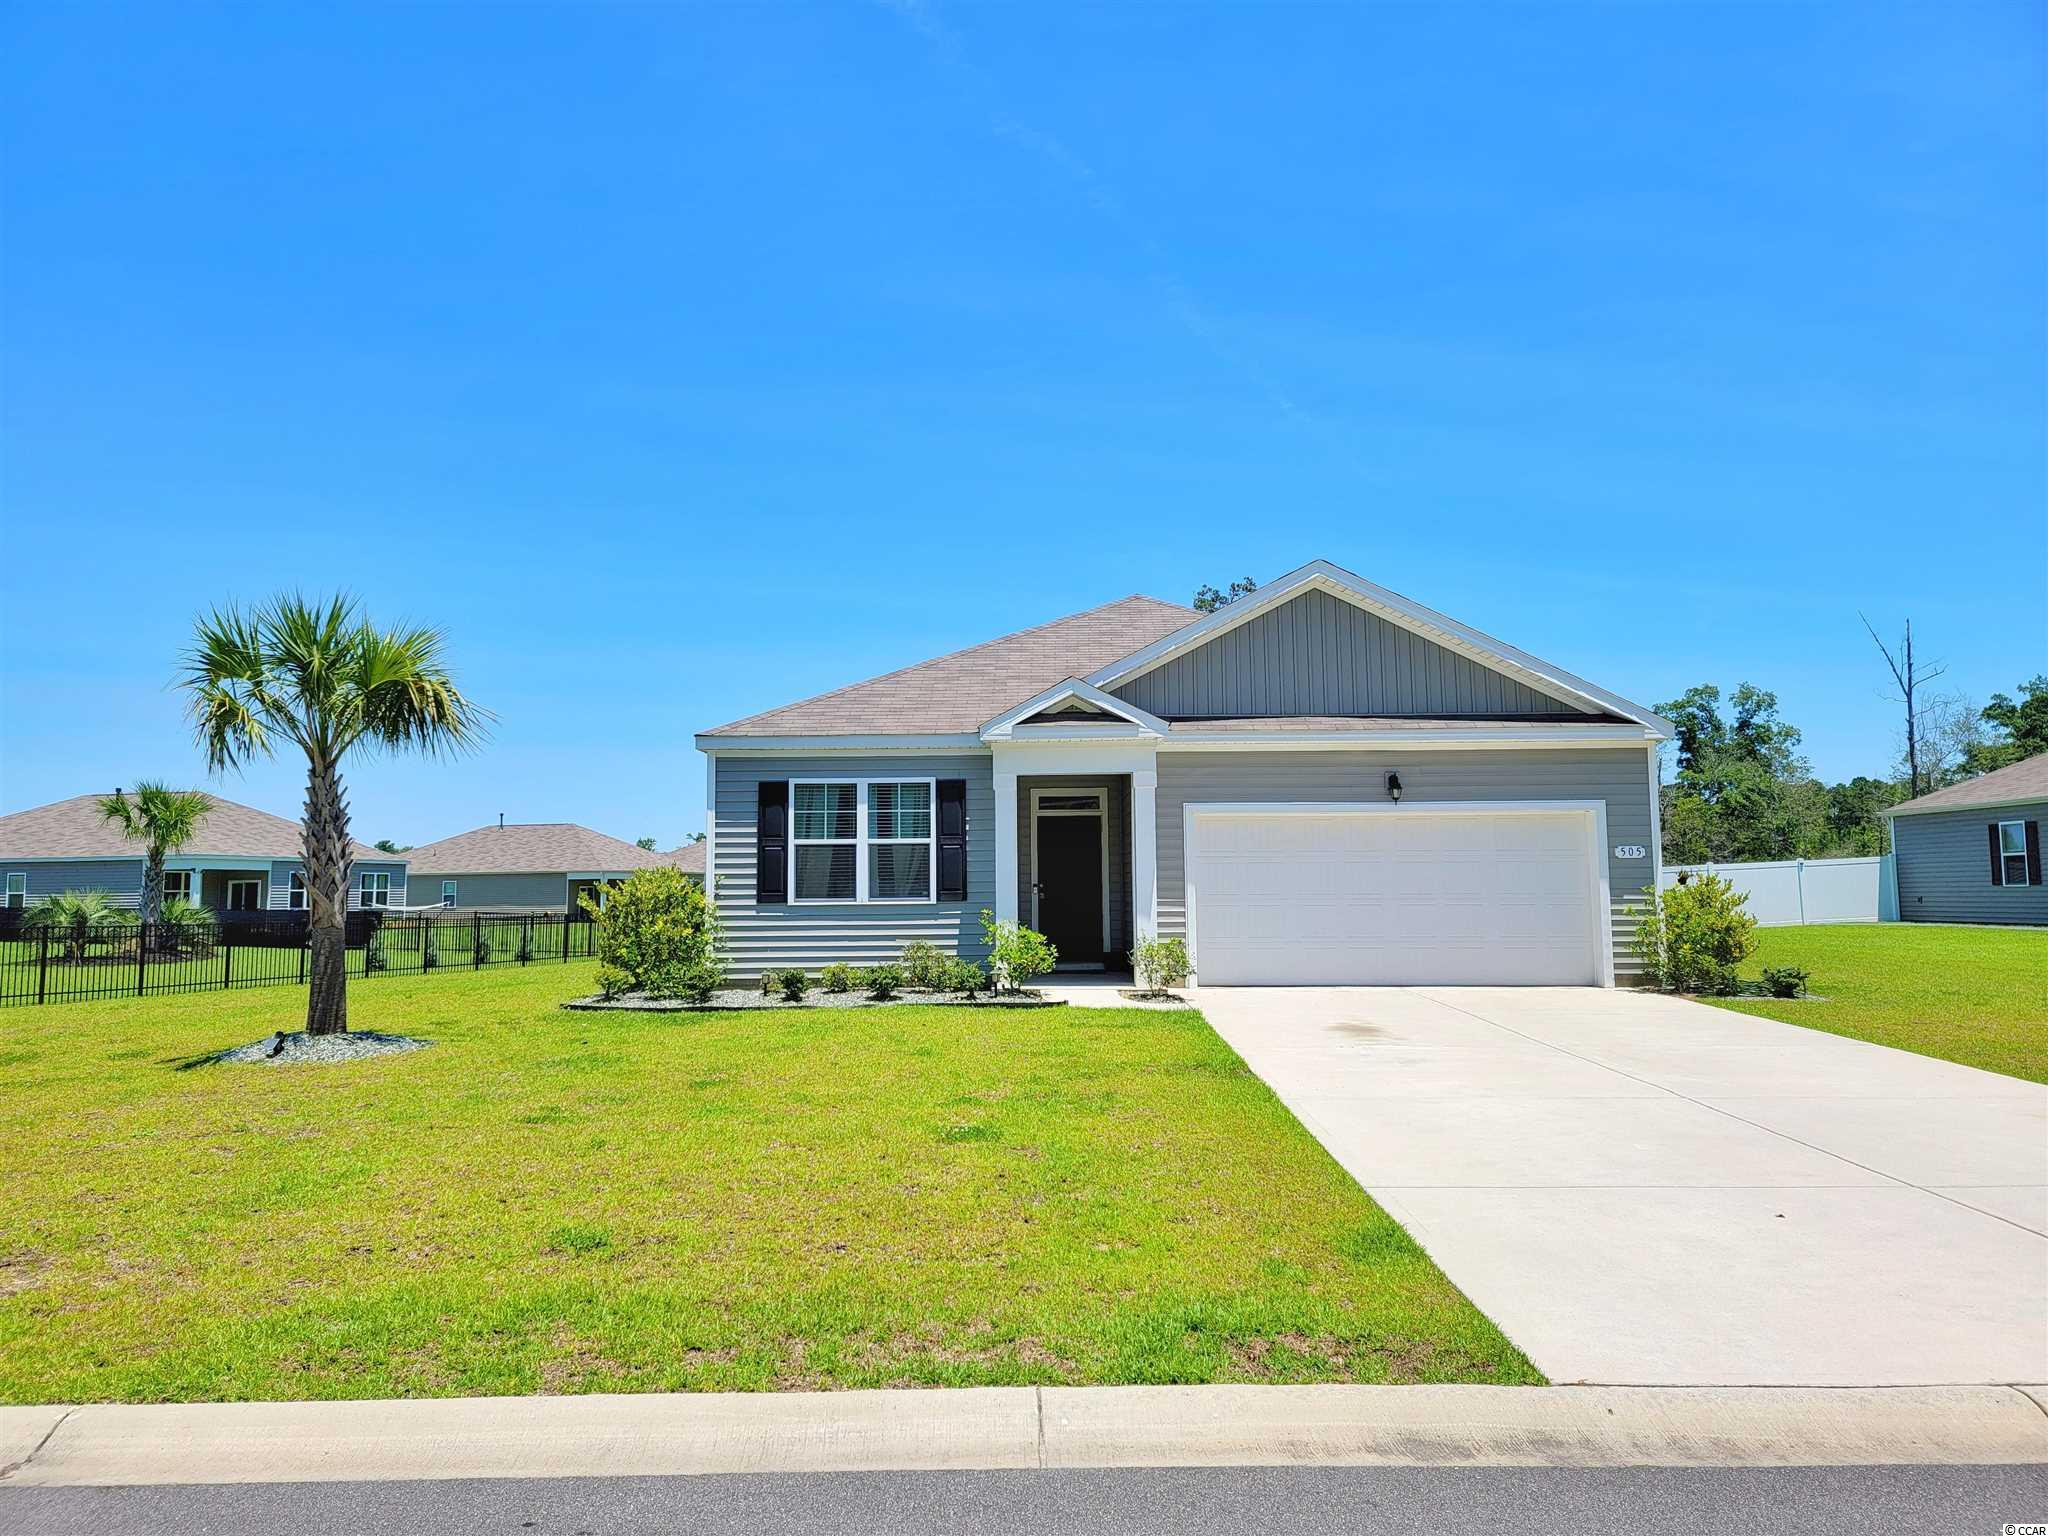 """Have you dreamed of the """"Palm tree in the front yard, beach living lifestyle"""" look no more !!!! Newly built in 2018 this home is beautifully up-to-date in the newest home living trends . The lot sits towards the end of a secluded quiet culdesac and near the community pool and fitness center . The home features both LVP and carpet flooring , stainless steal appliances and stunning granite in the Kitchen . The Aria floor plan is a Ranch style 3 spacious bedrooms , 2 Full bath , wide open concept living and kitchen , with large closets and a 2 car garage . Enjoy dinners inside in your formal dining area or outside under your covered pergola ! LOCATION LOCATION - Located just minutes from 501 you can quickly access Grocery stores , Outlet mall shopping , Restaurants , and just 20 minutes to the Ocean !!"""